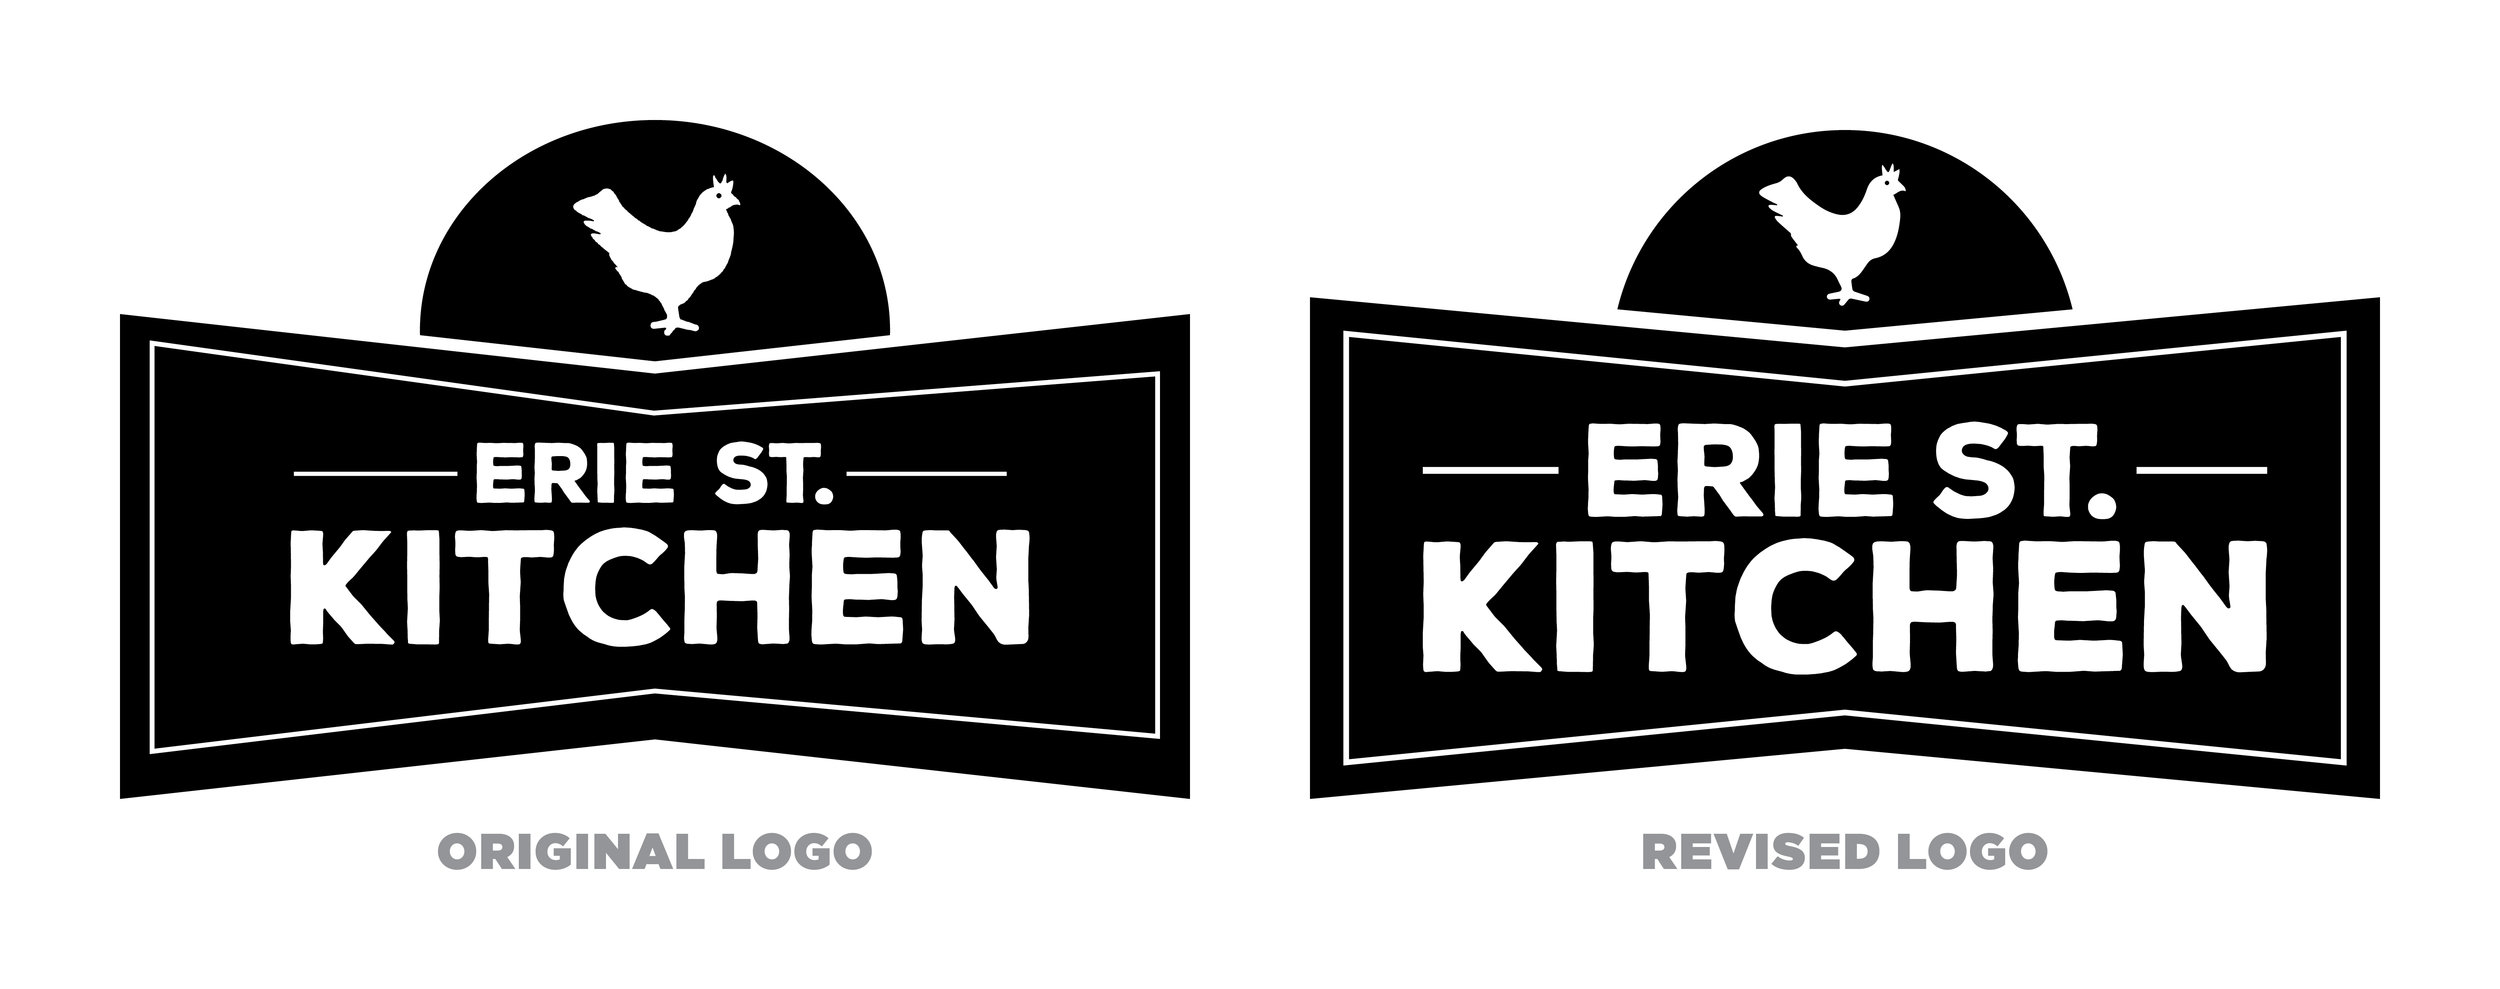 Erie Street Kitchen — Logo Comparison